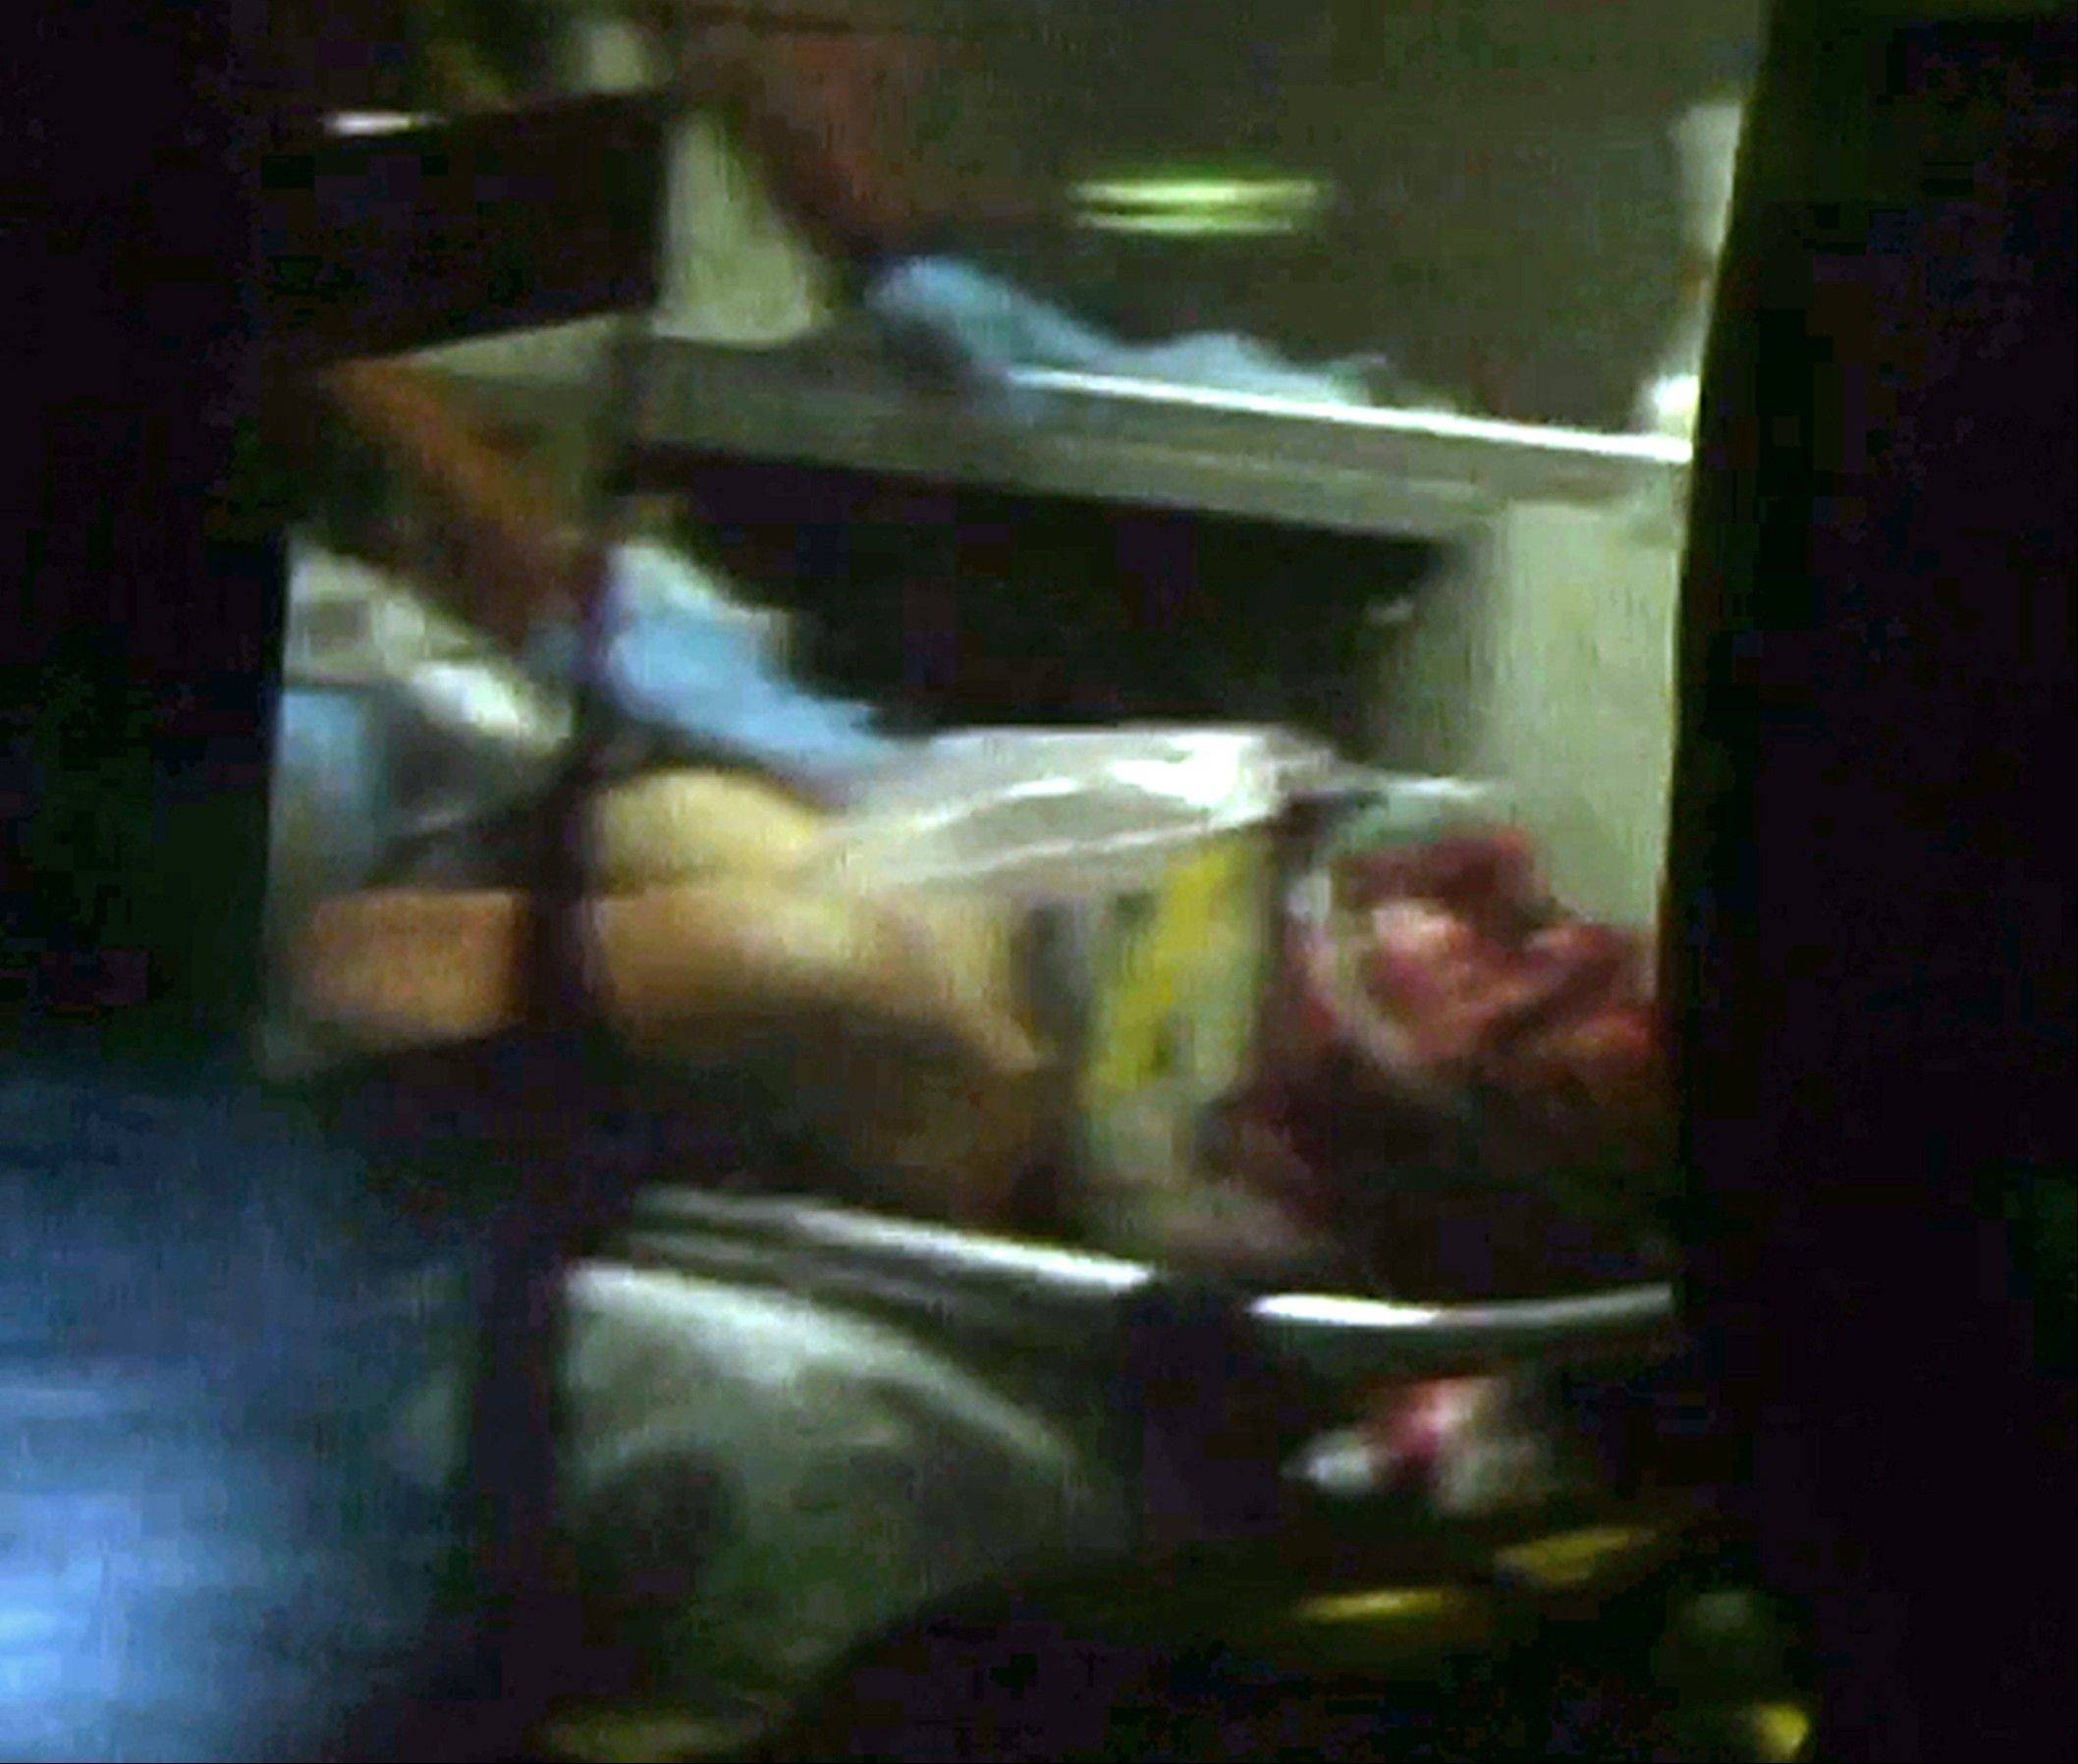 This still frame from video shows Boston Marathon bombing suspect Dzhokhar Tsarnaev visible through an ambulance after he was captured in Watertown, Mass., Friday, April 19, 2013. A 19-year-old college student wanted in the Boston Marathon bombings was taken into custody Friday evening after a manhunt that left the city virtually paralyzed and his older brother and accomplice dead.